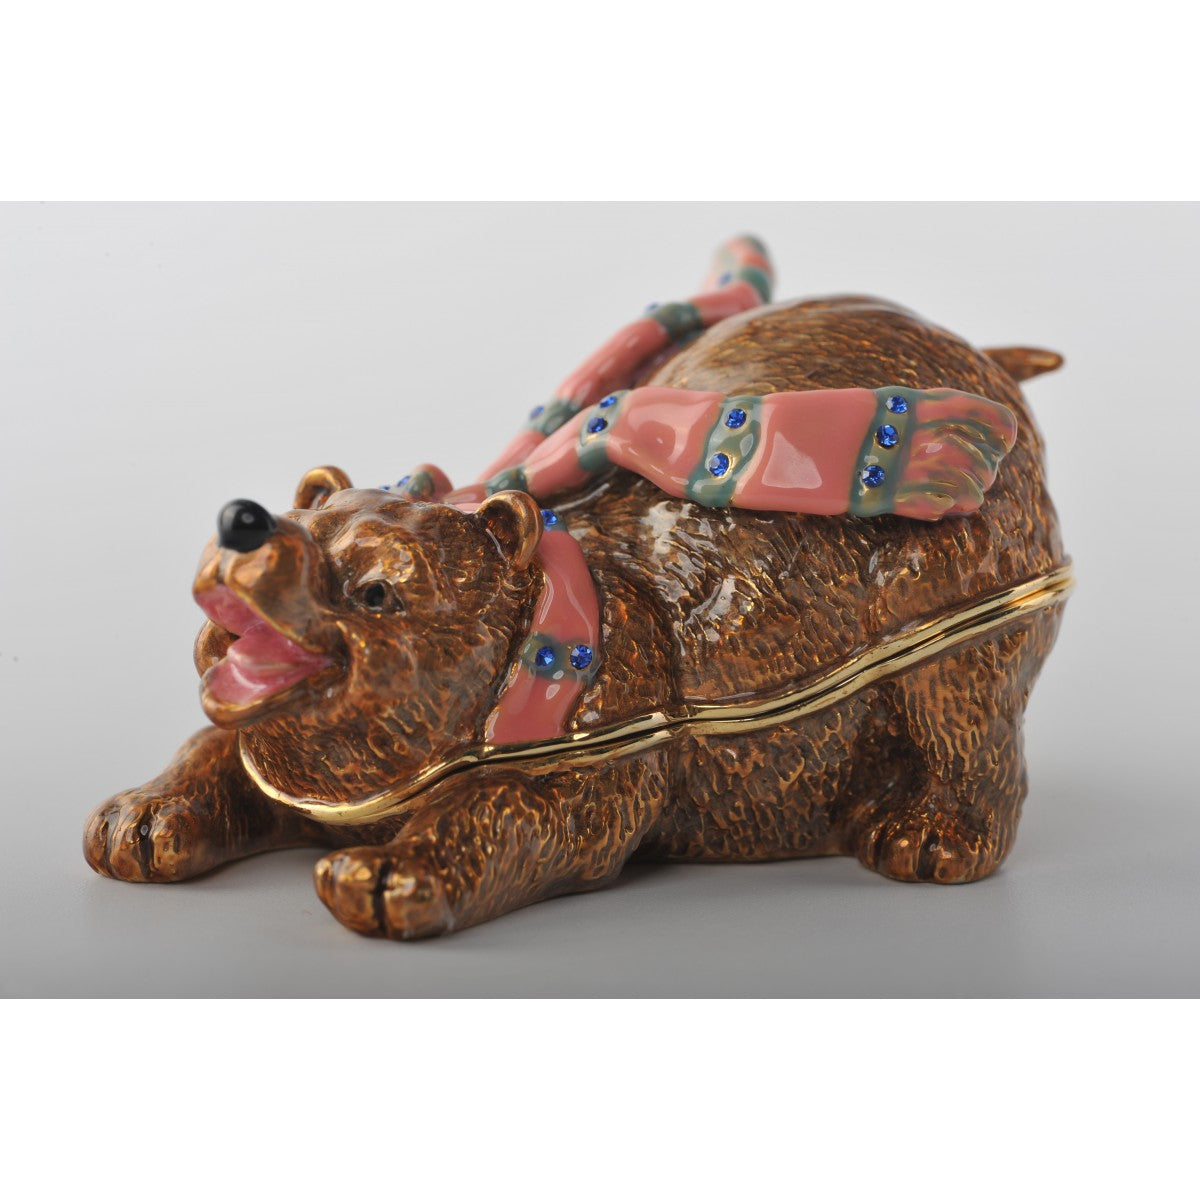 Faberge Style Love Bear Trinket Box by Keren Kopal